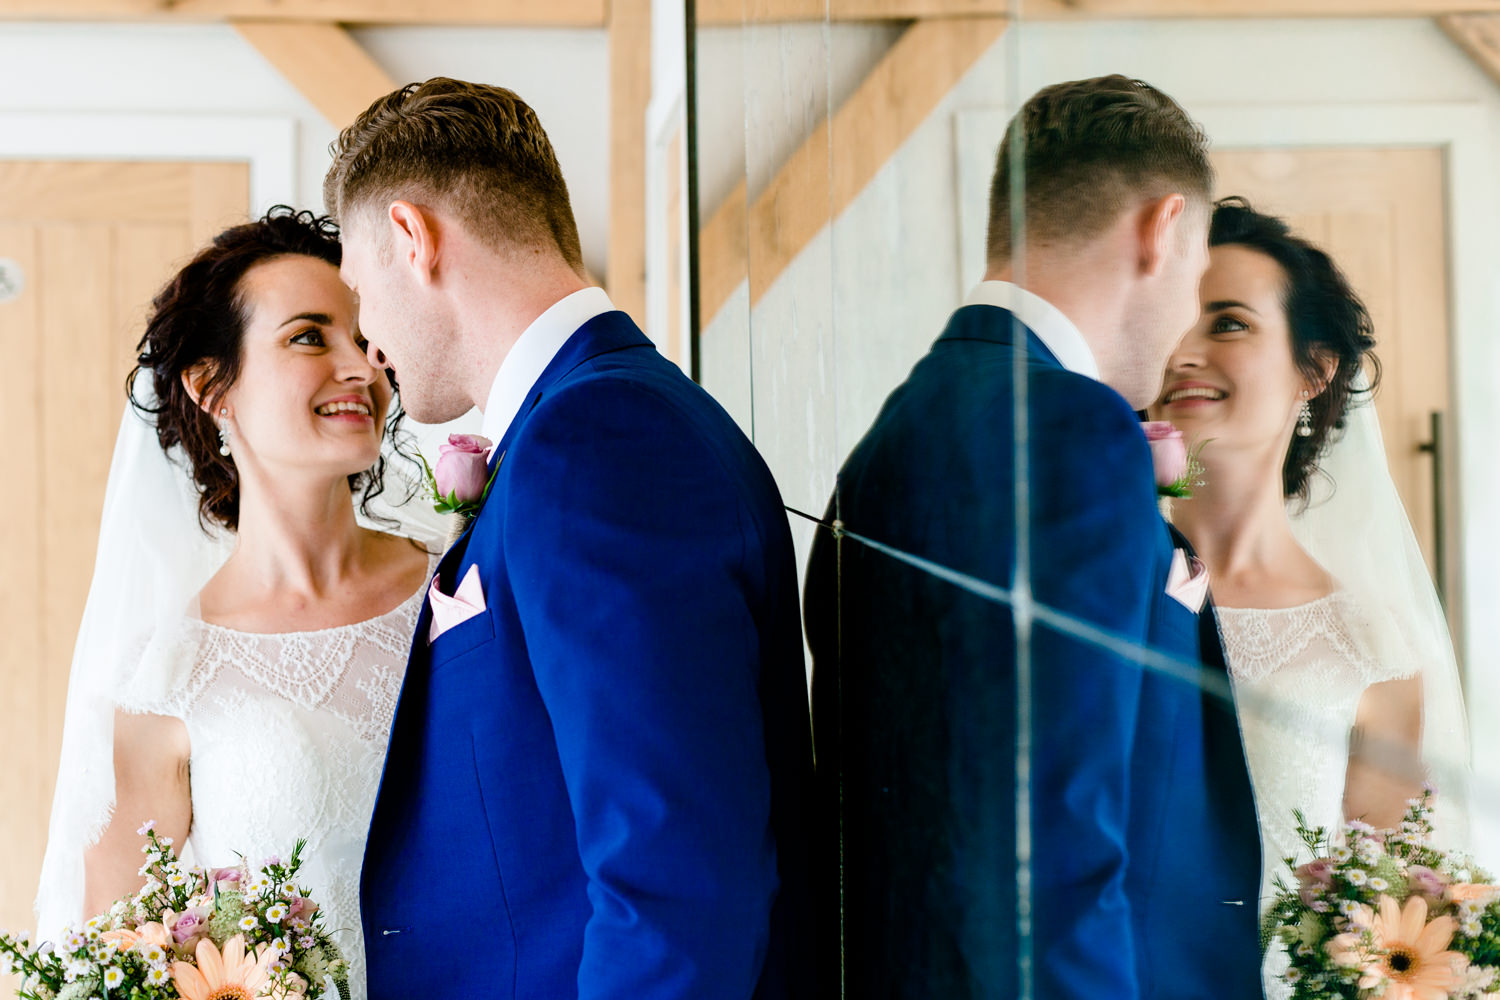 A wedding couple close together with their refection in a mirror.